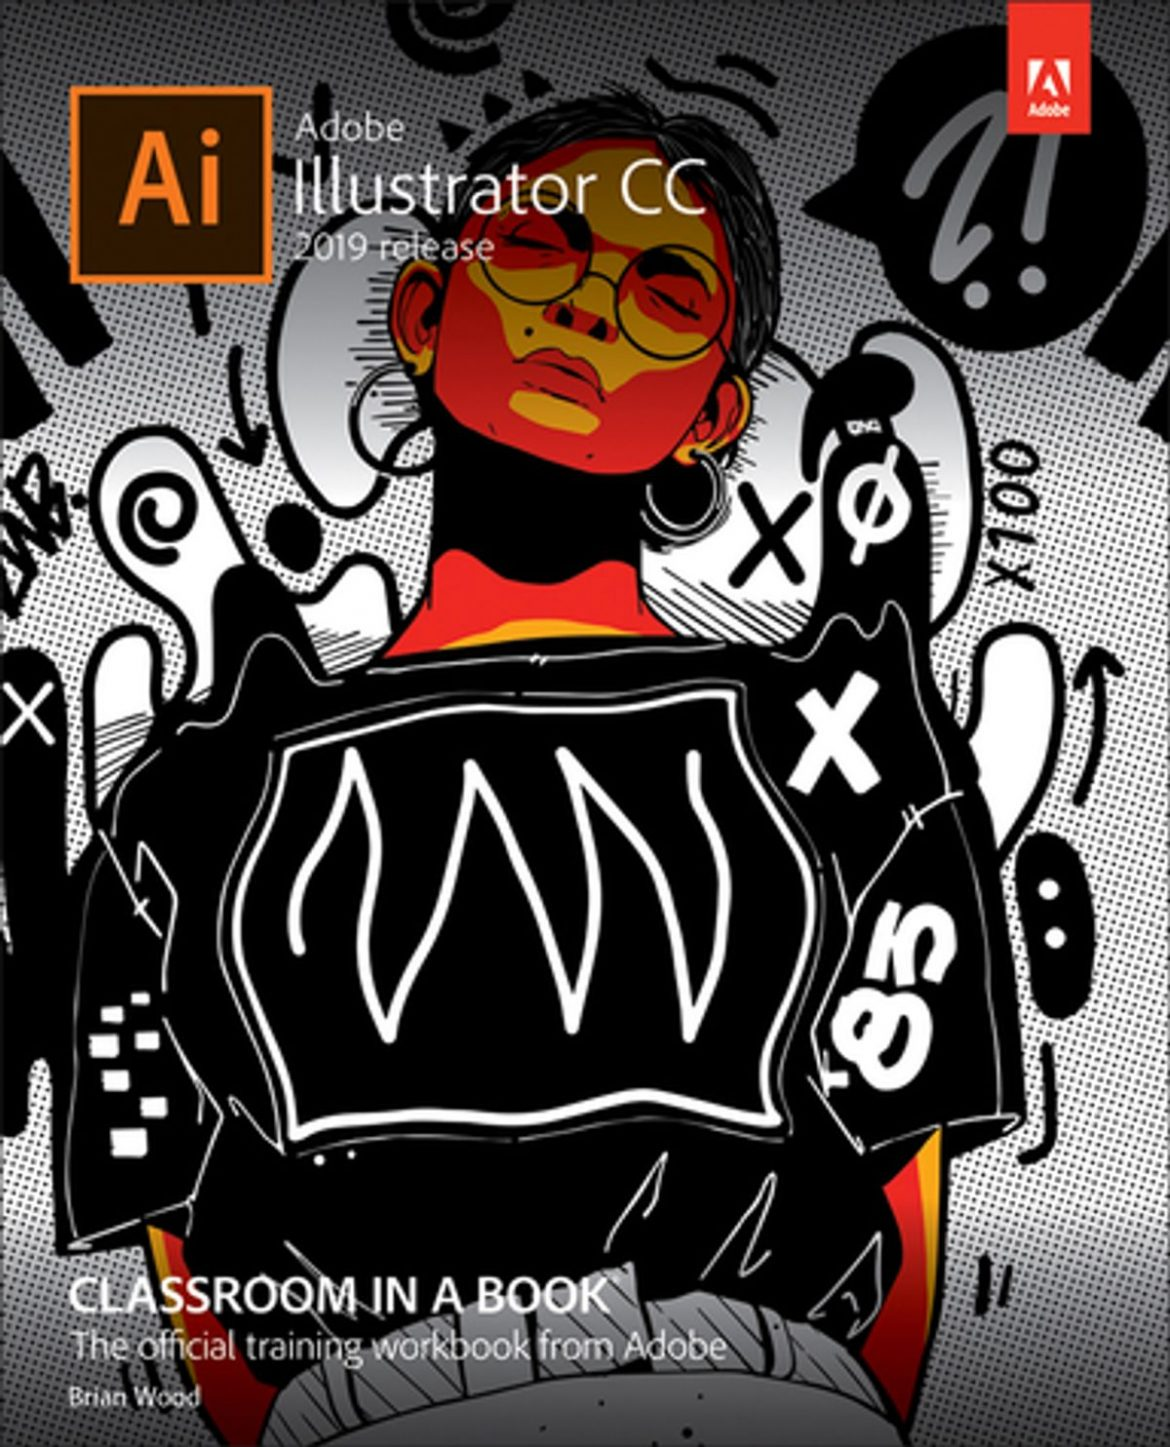 Adobe Illustrator CC 2019 Crack